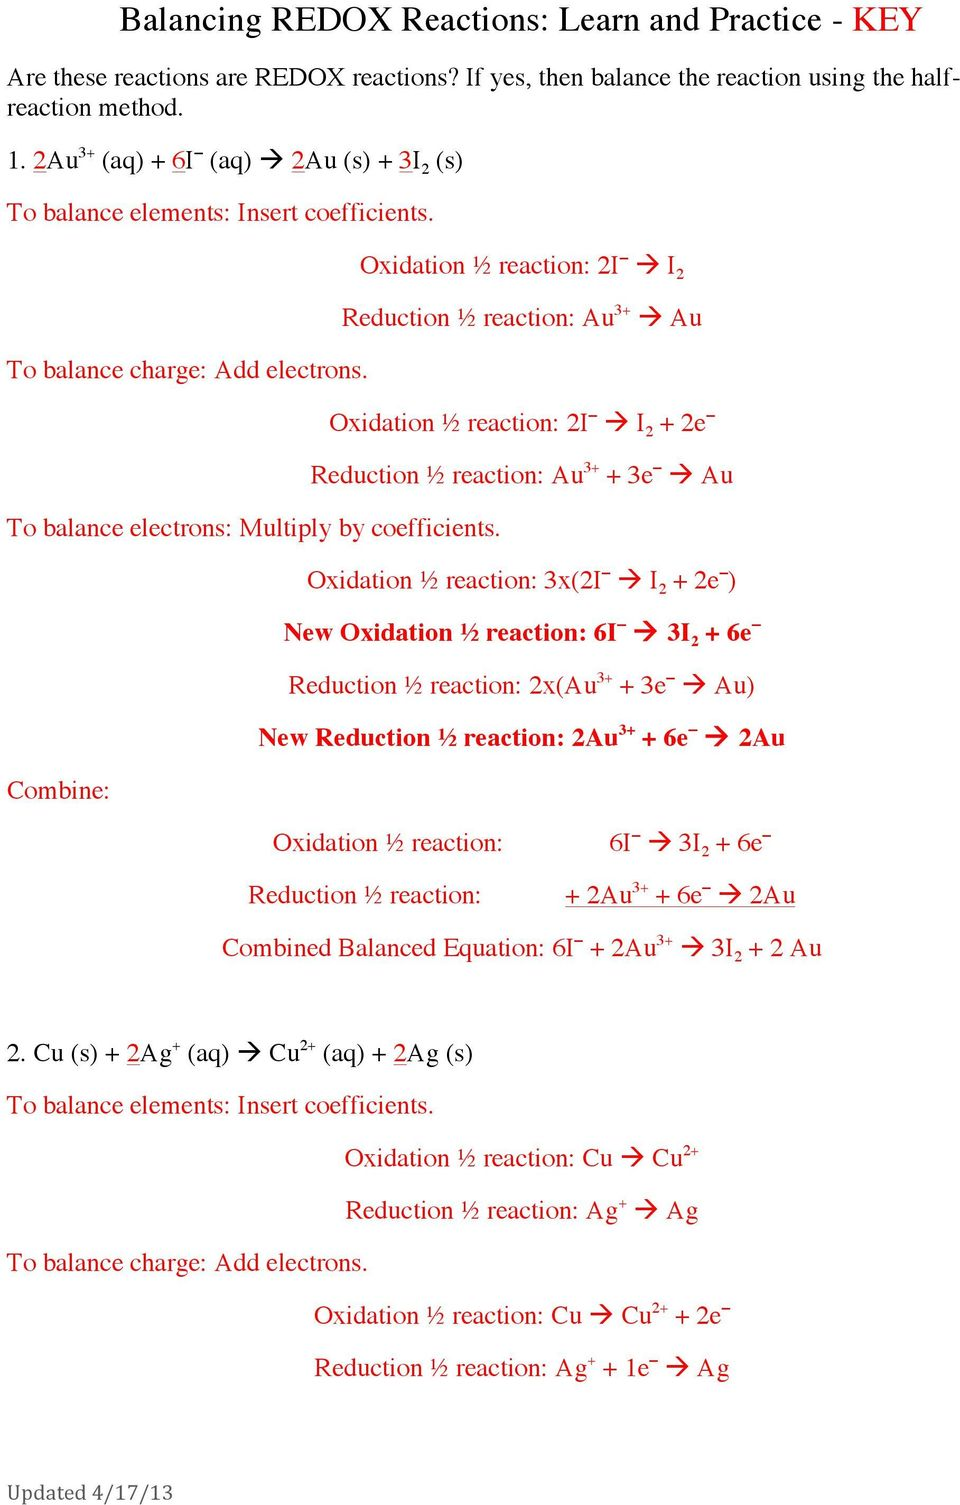 Balancing REDOX Reactions: Learn and Practice - KEY - PDF ...